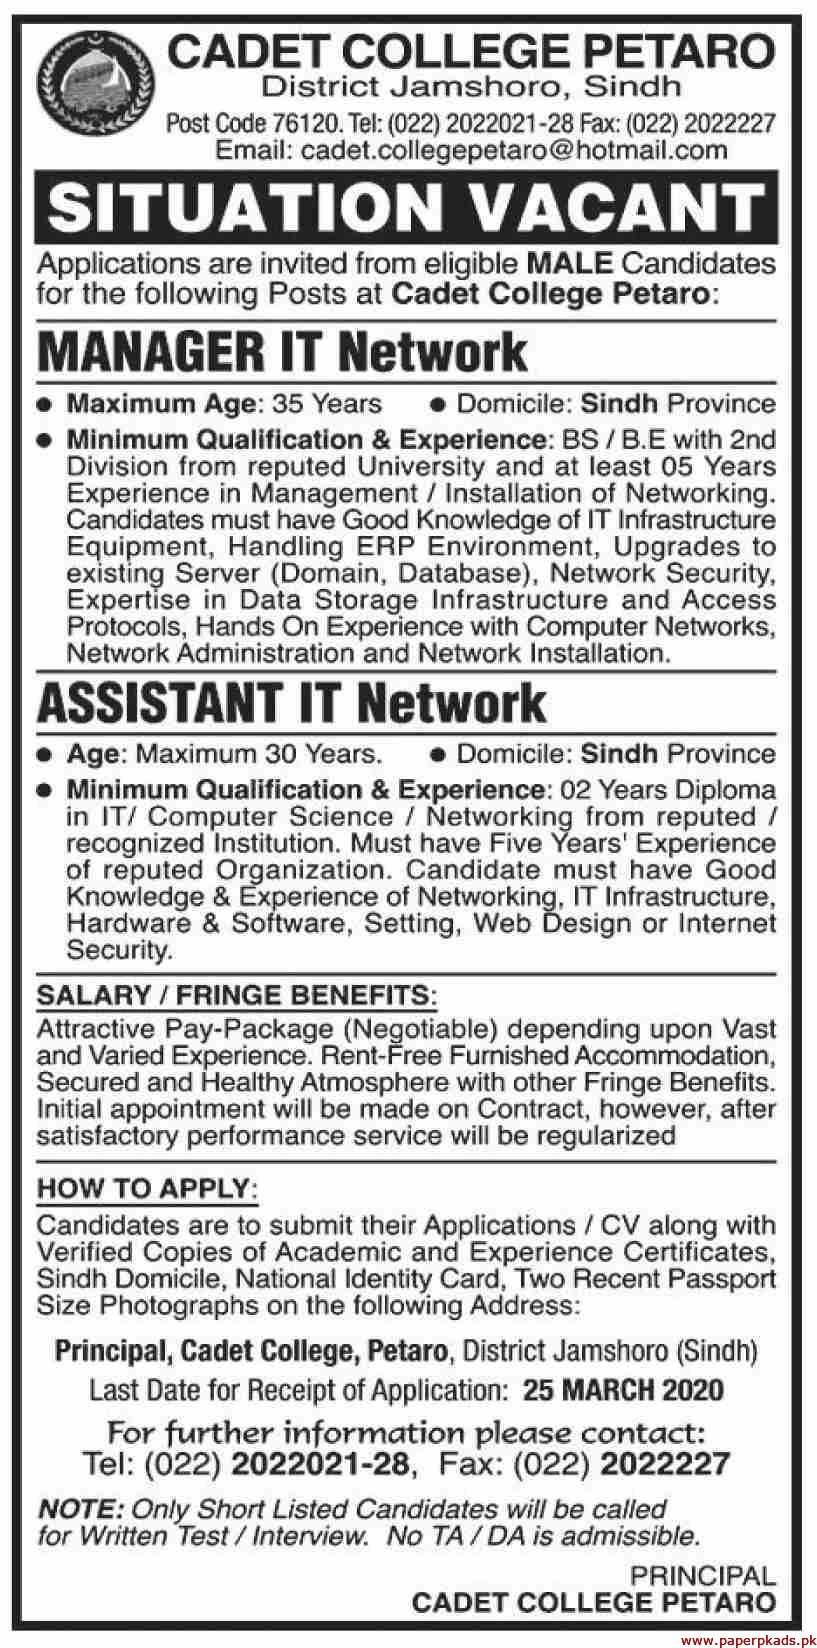 Cadet College Petaro Jobs 2020 Latest